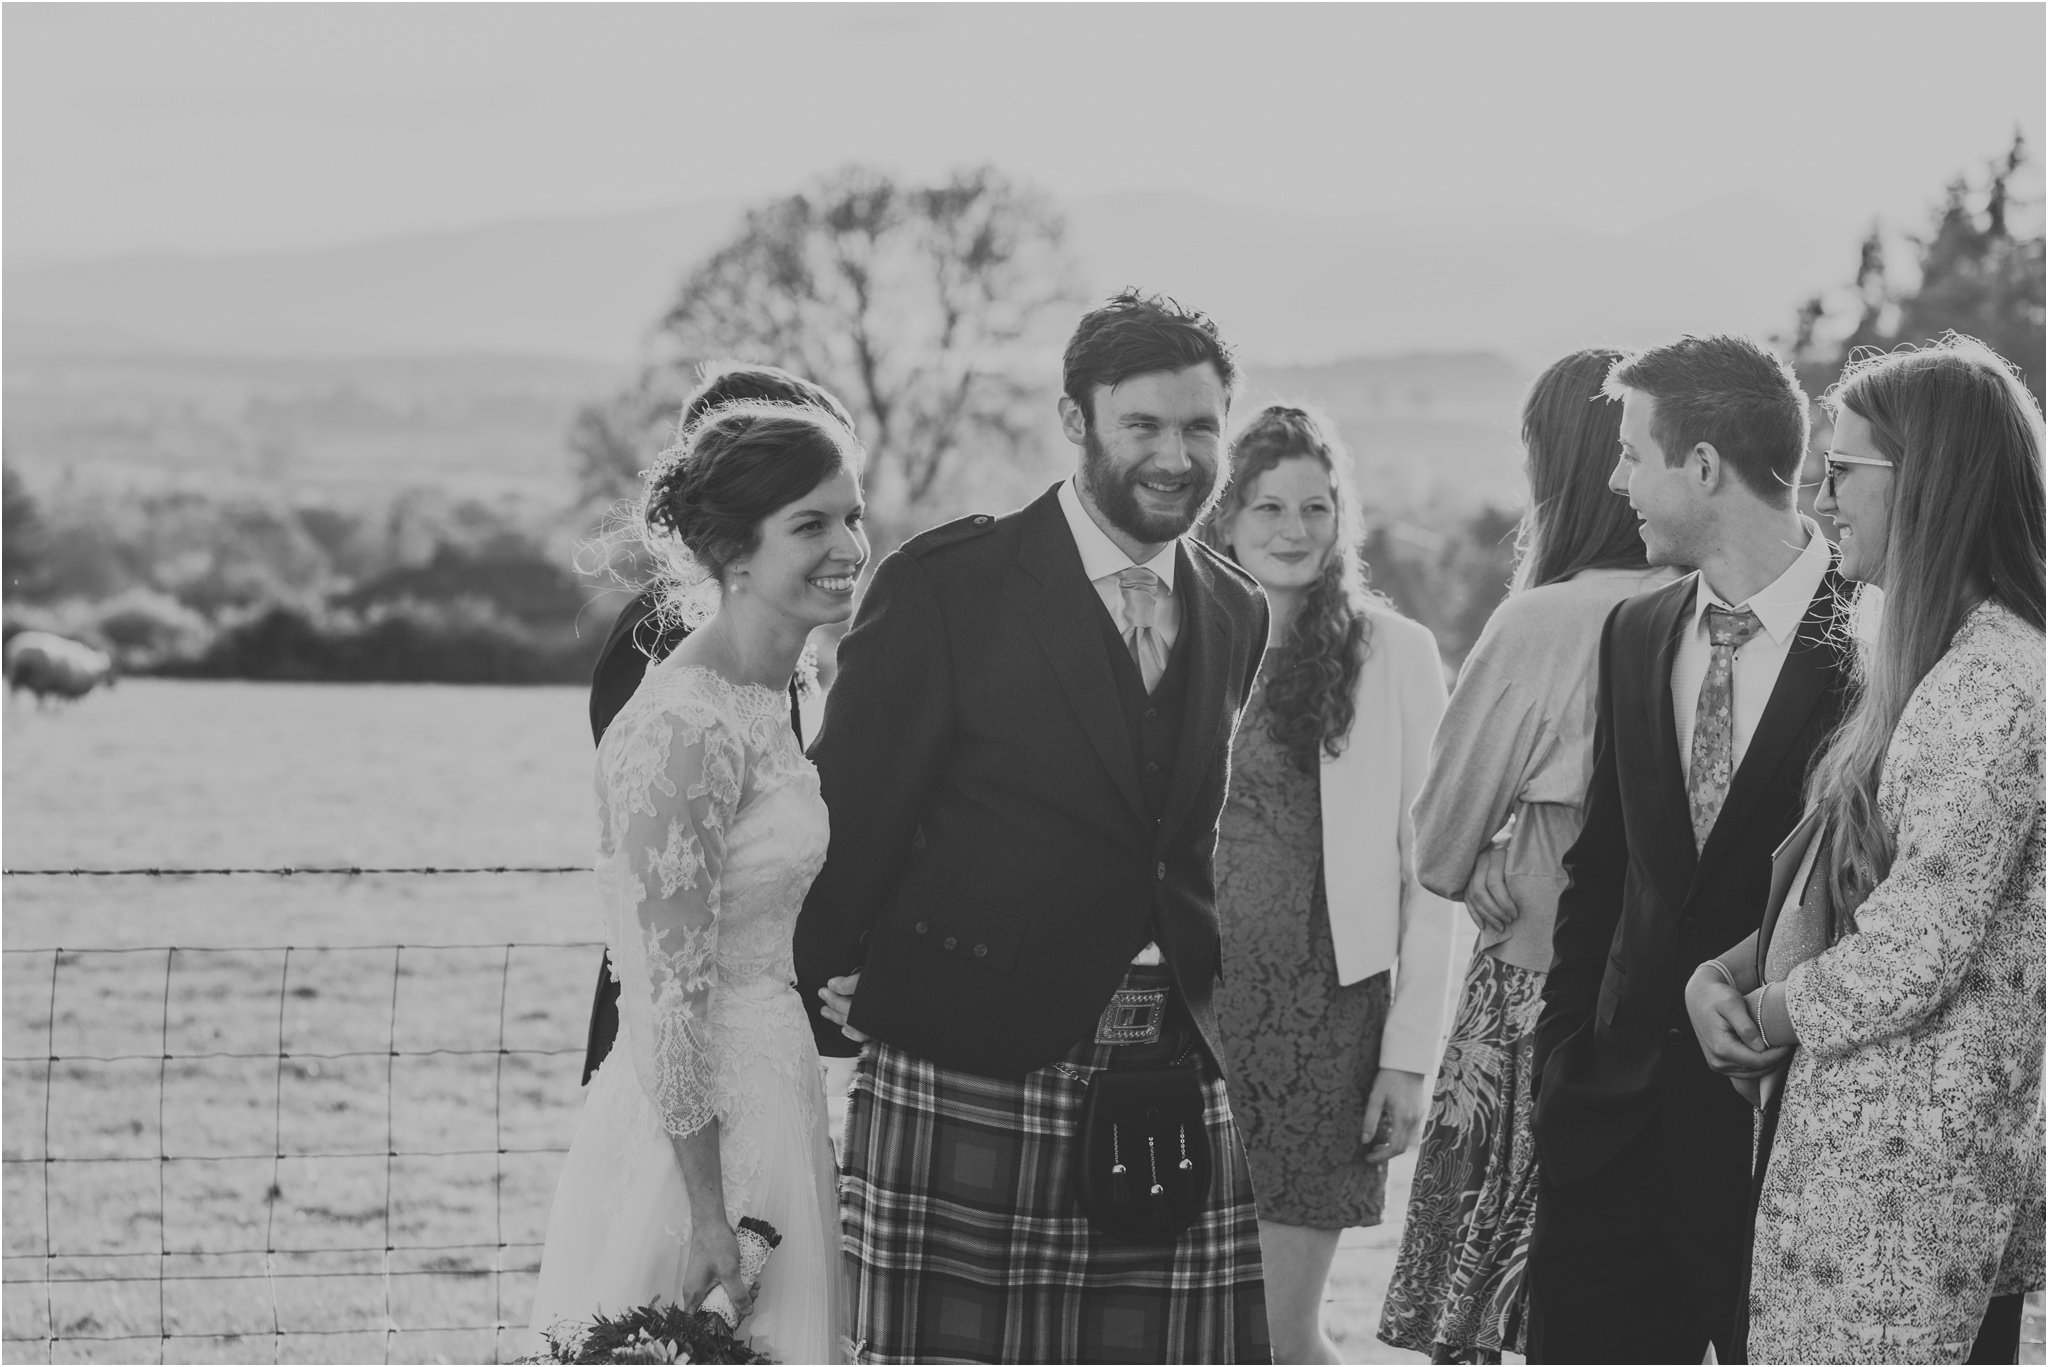 Photography 78 - Glasgow Wedding Photographer - Fraser Thirza - Killearn Village Hall - Three Sisters Bake Wedding_0155.jpg